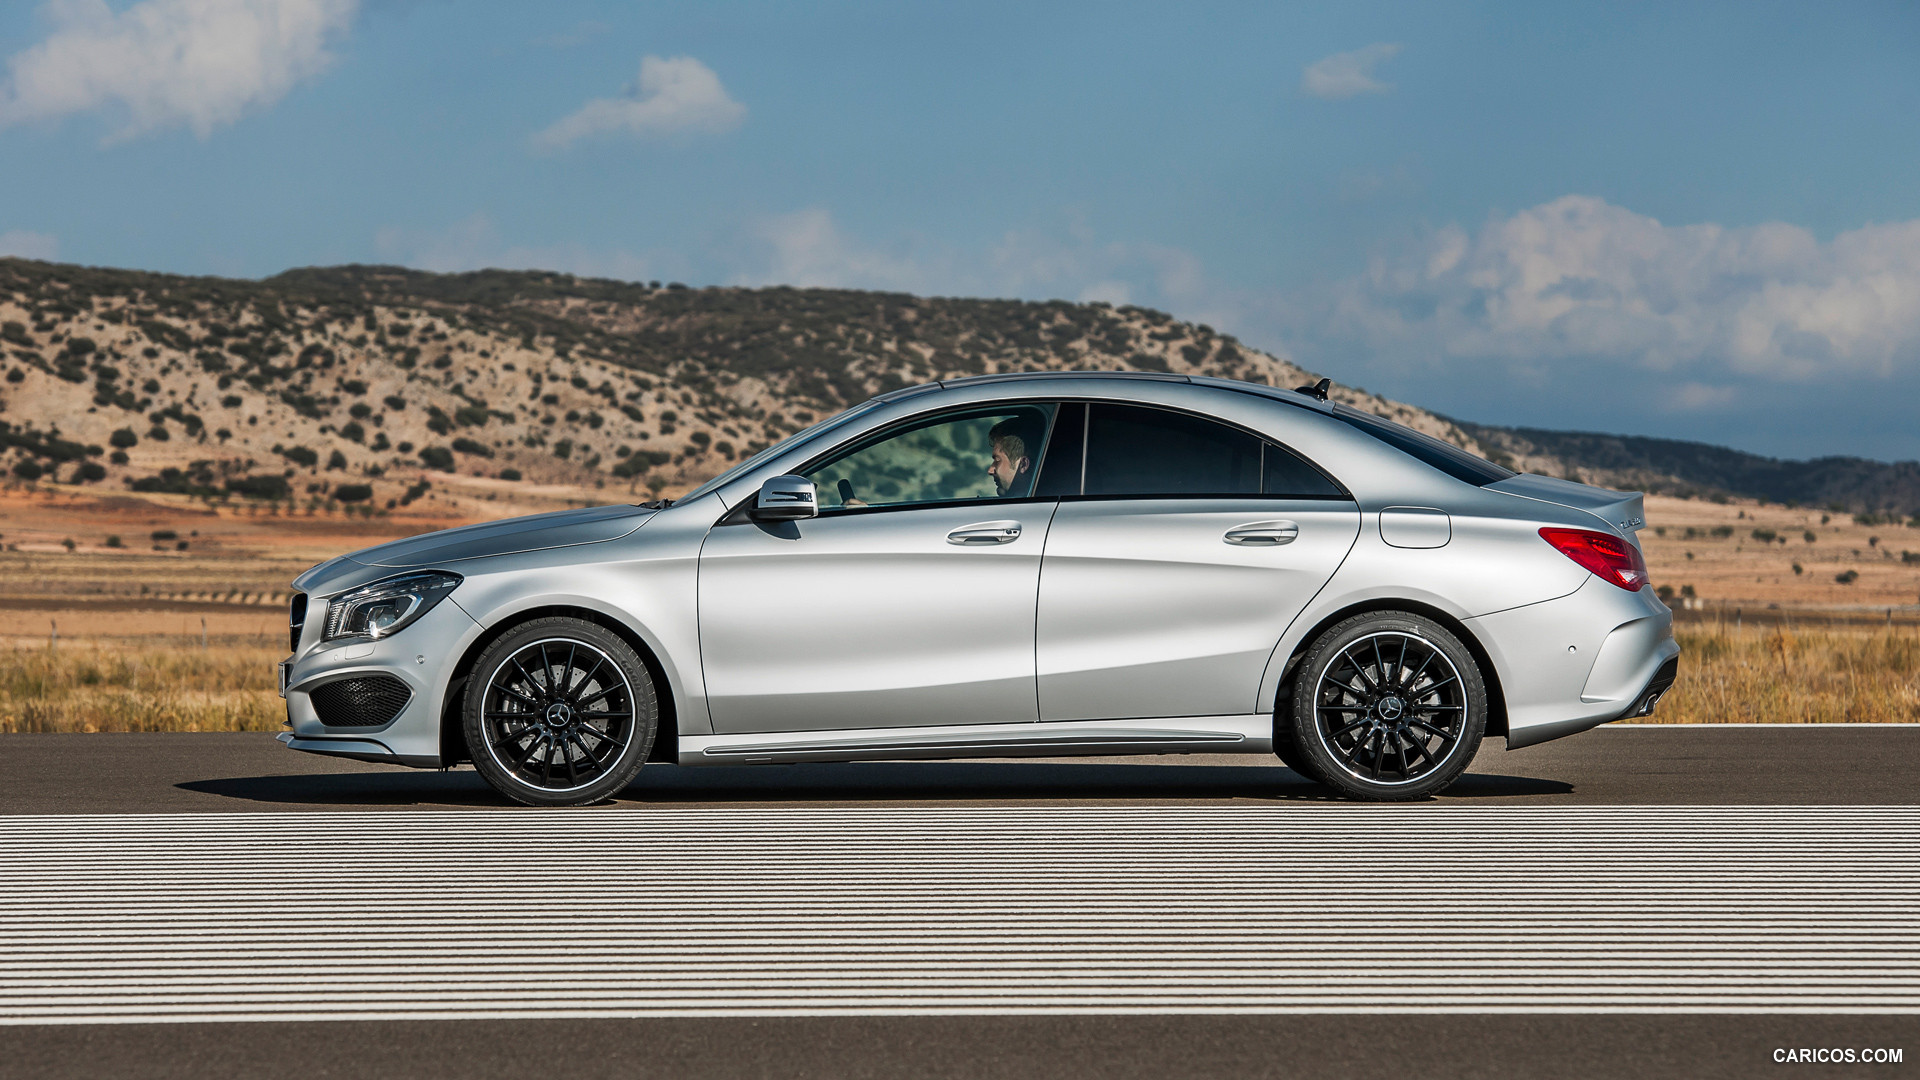 2014 mercedes benz cla class wallpaper 1920x1080 15811 for 2014 mercedes benz cla class